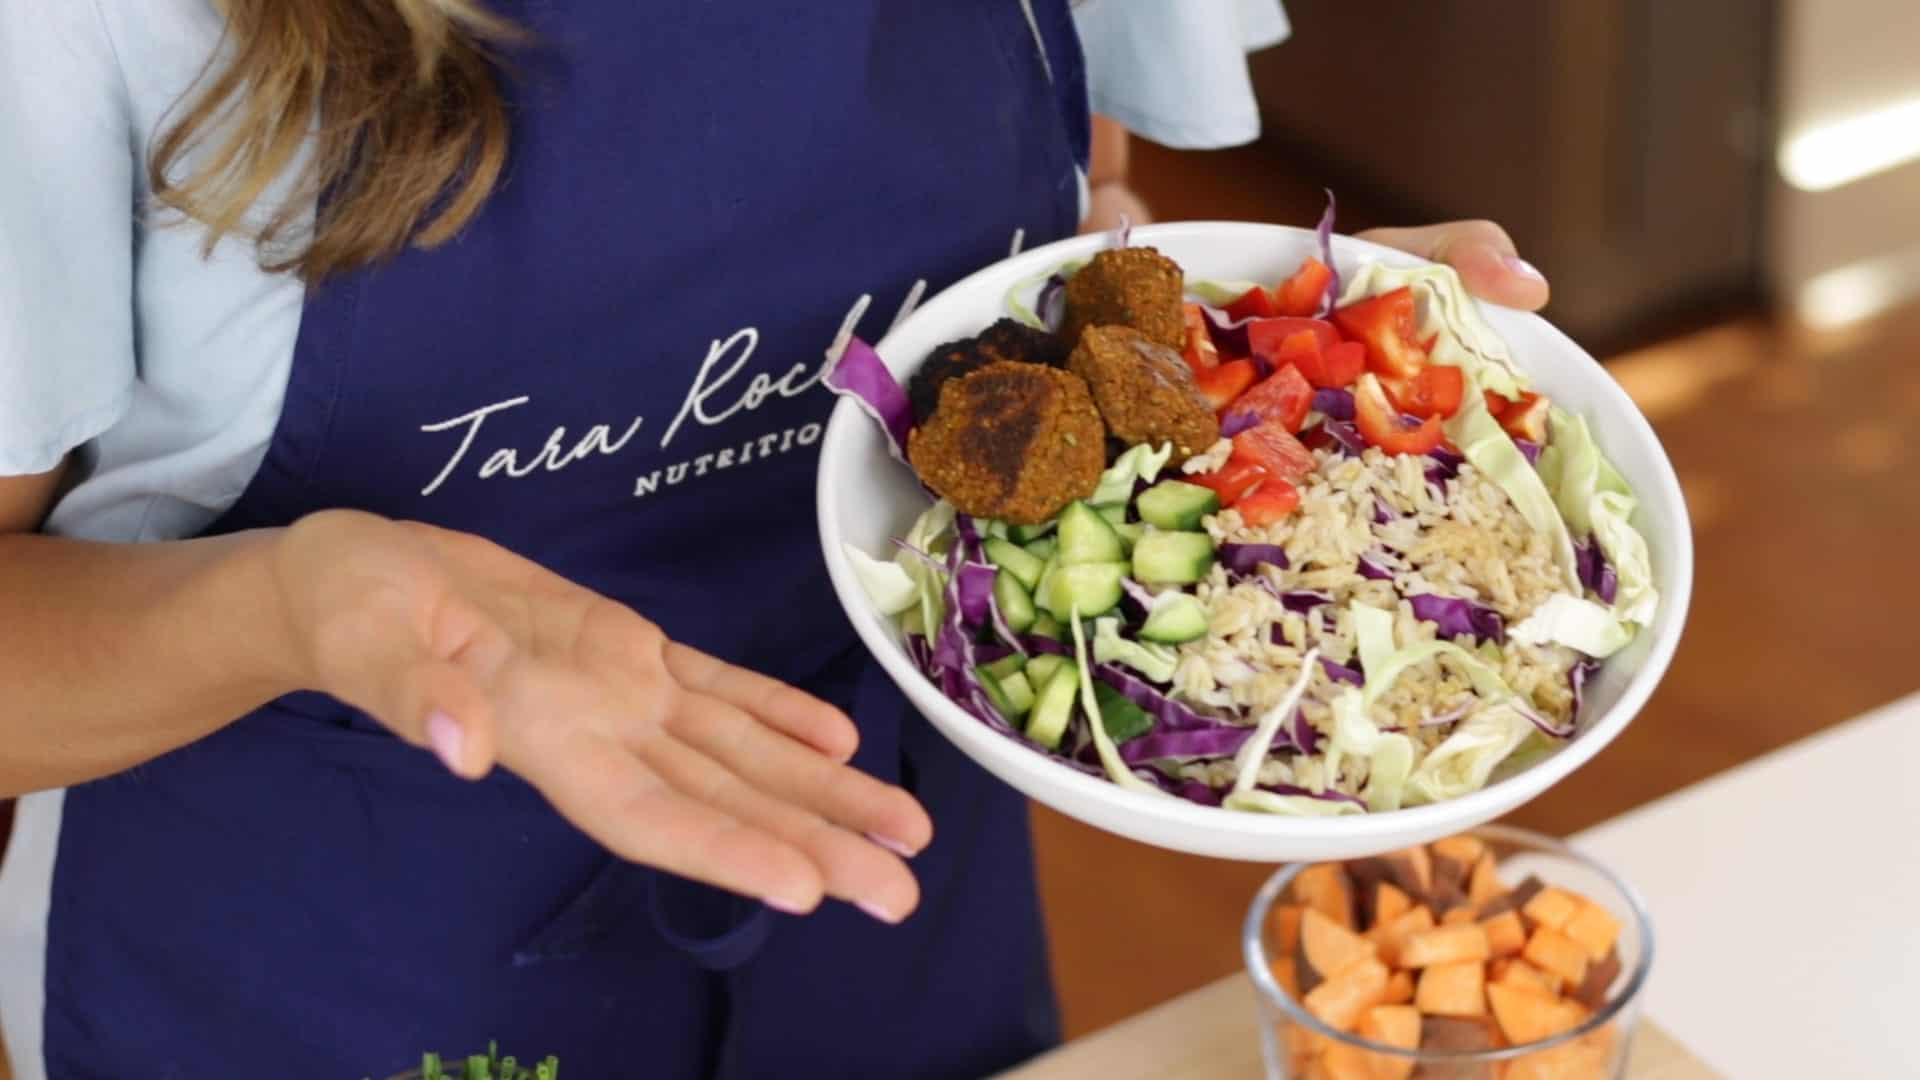 Sweet Potato Falafel Bowl - The 14 Day Elimination Diet #allergyfree #foodallergies #eliminationdiet #tararochfordnutrition